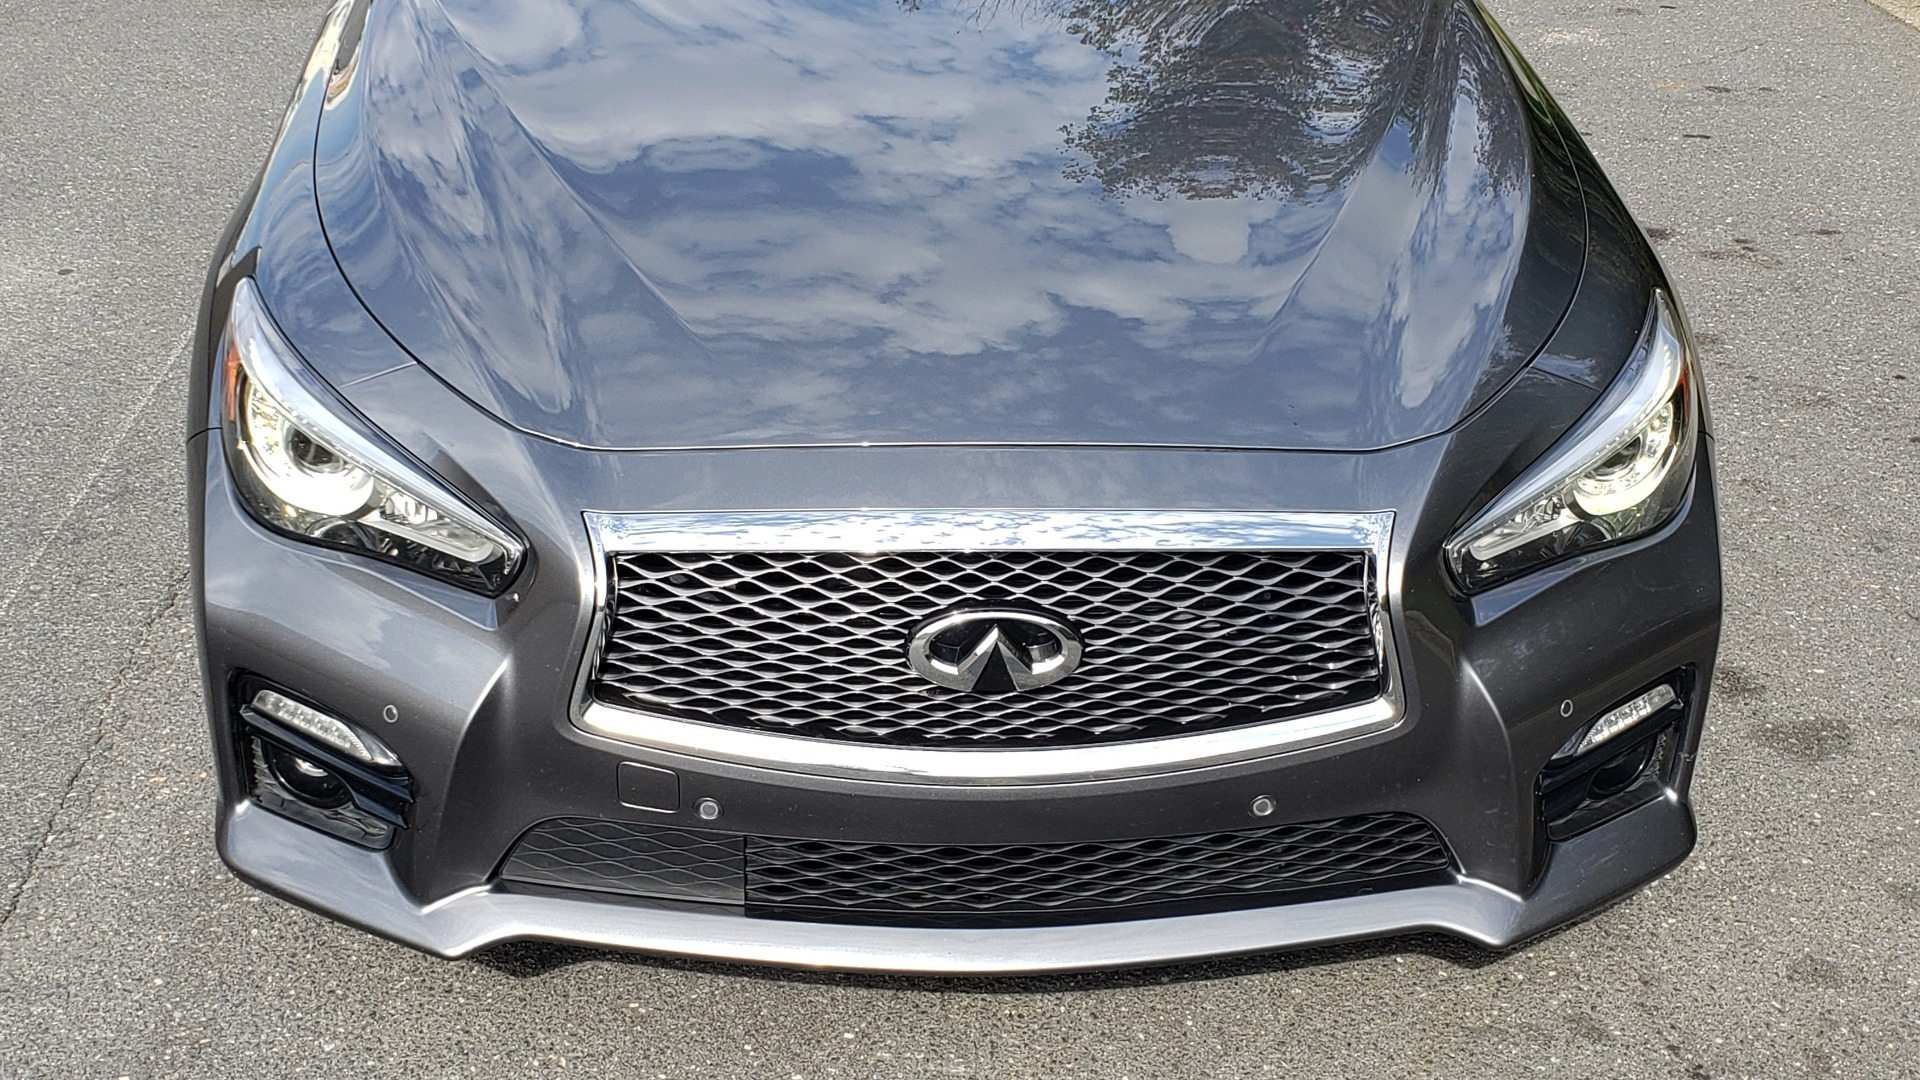 Used 2016 INFINITI Q50 3.0T RED SPORT 400 / NAV / PREM PLUS / BLIND SPOT / REARVIEW for sale $28,495 at Formula Imports in Charlotte NC 28227 15